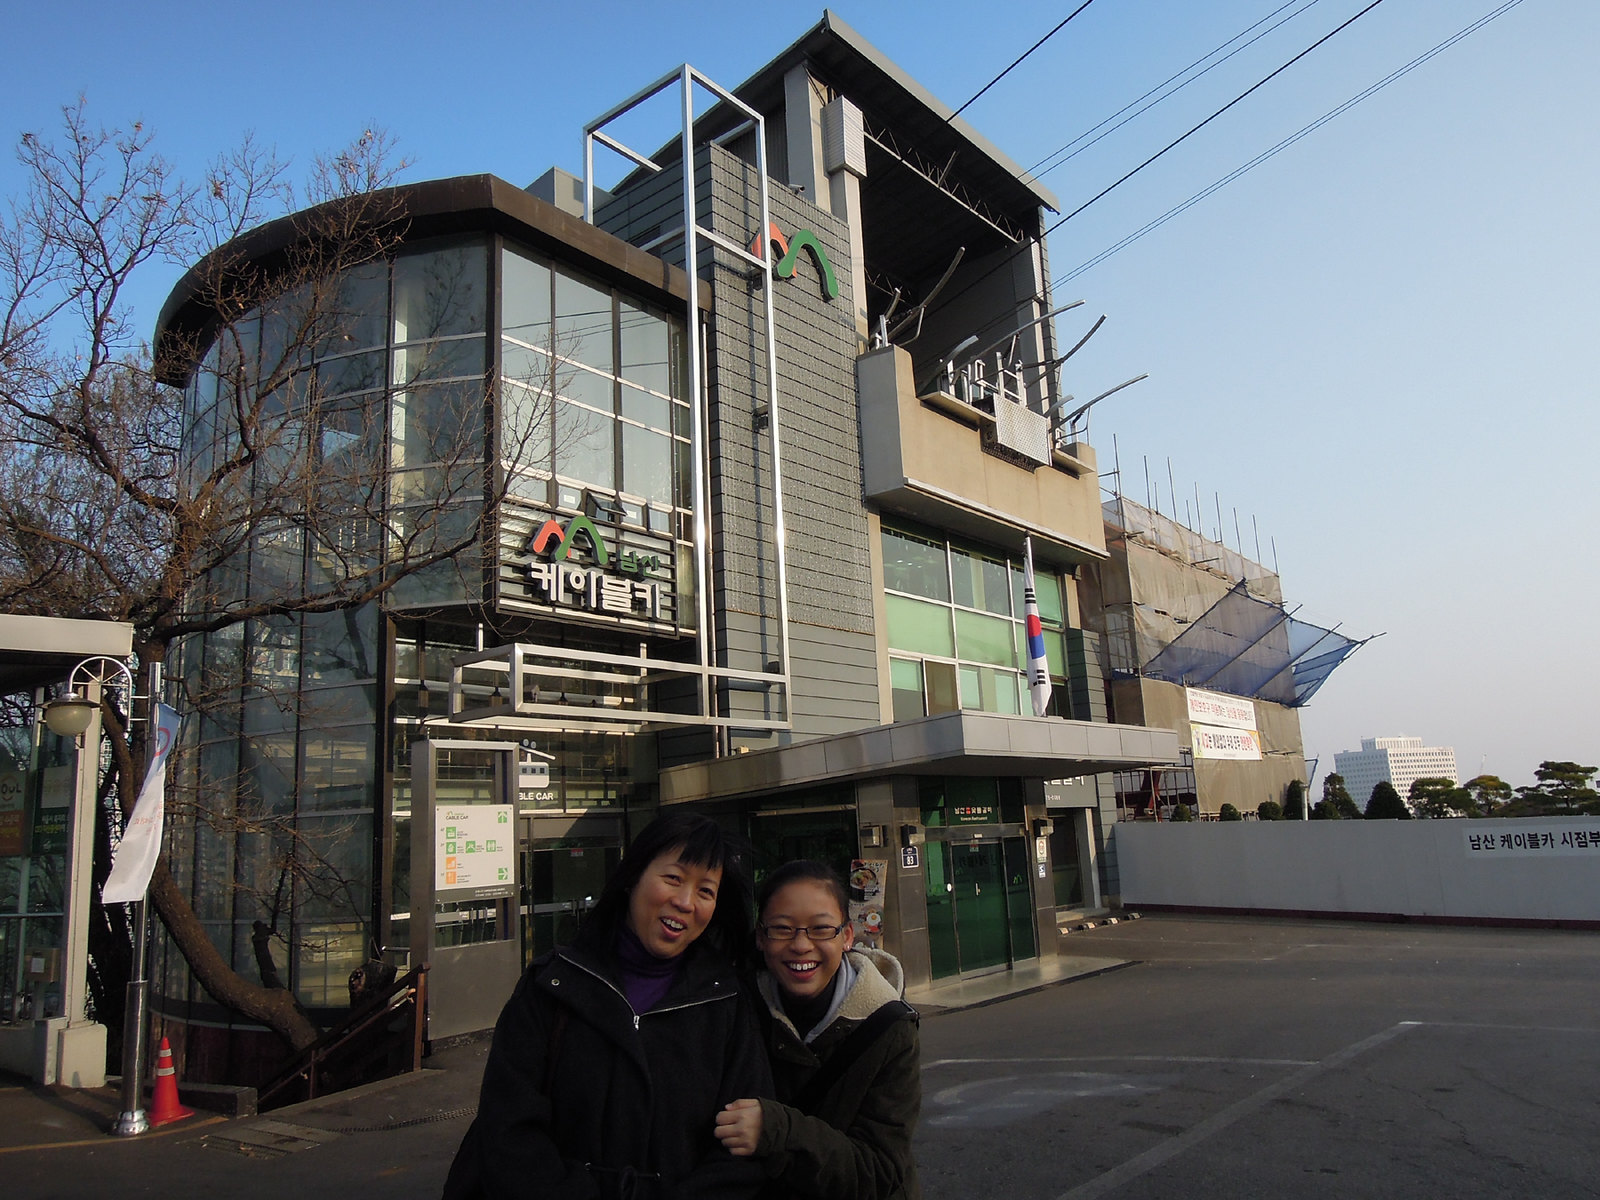 Namsan cable car - Yes This Is The Namsan Cable Car Station